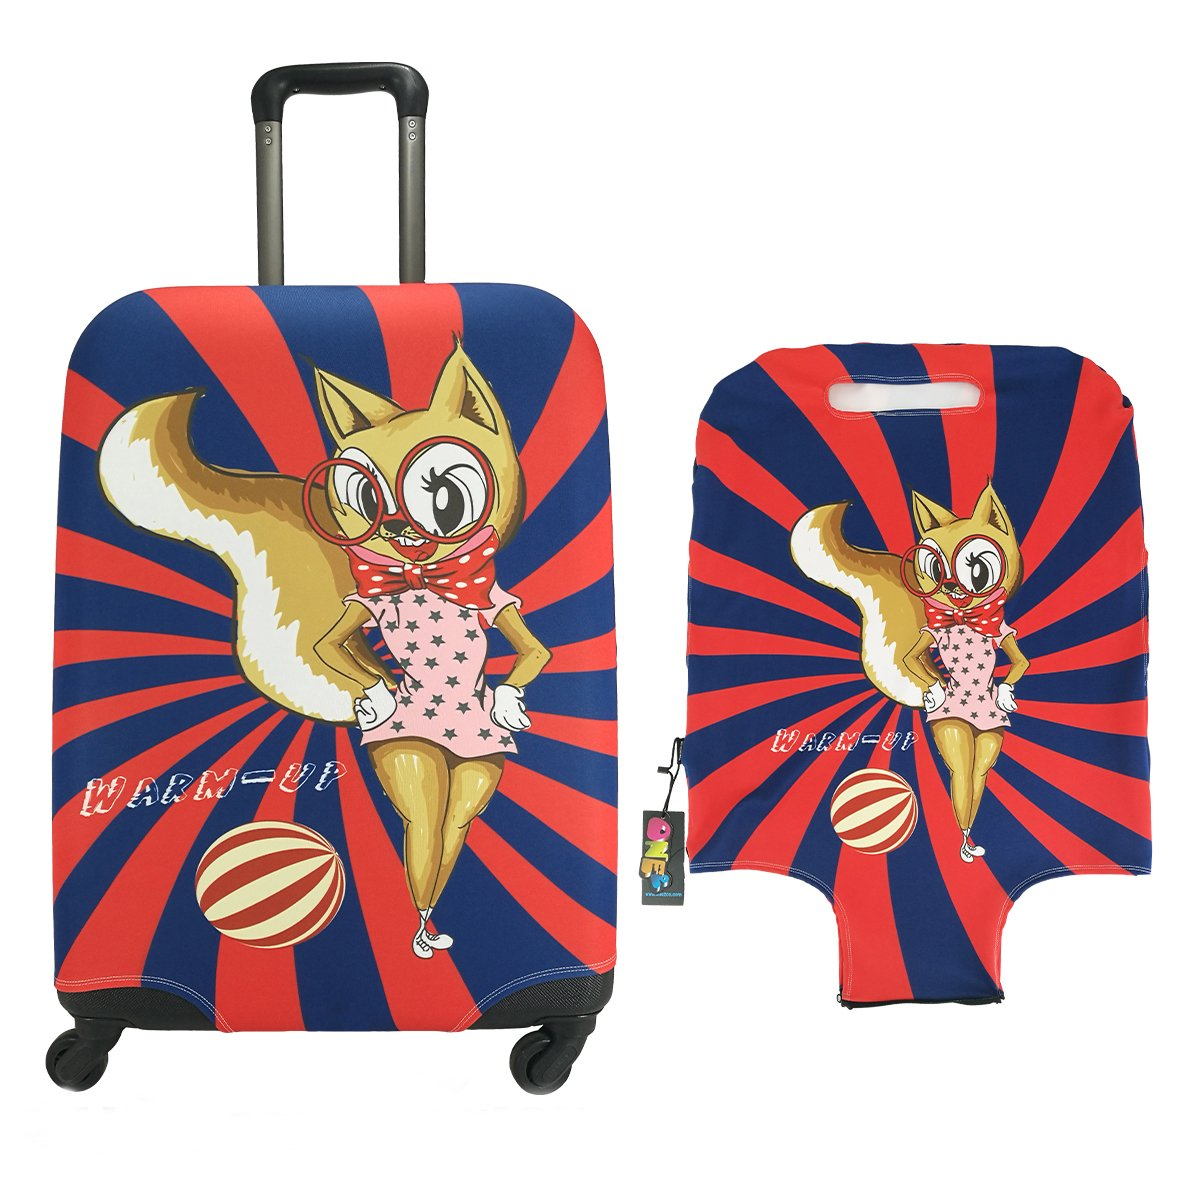 Animal Travel Luggage Cover ONE2 Cartoon Suitcase Protector Fits 18-30 Inch Luggage